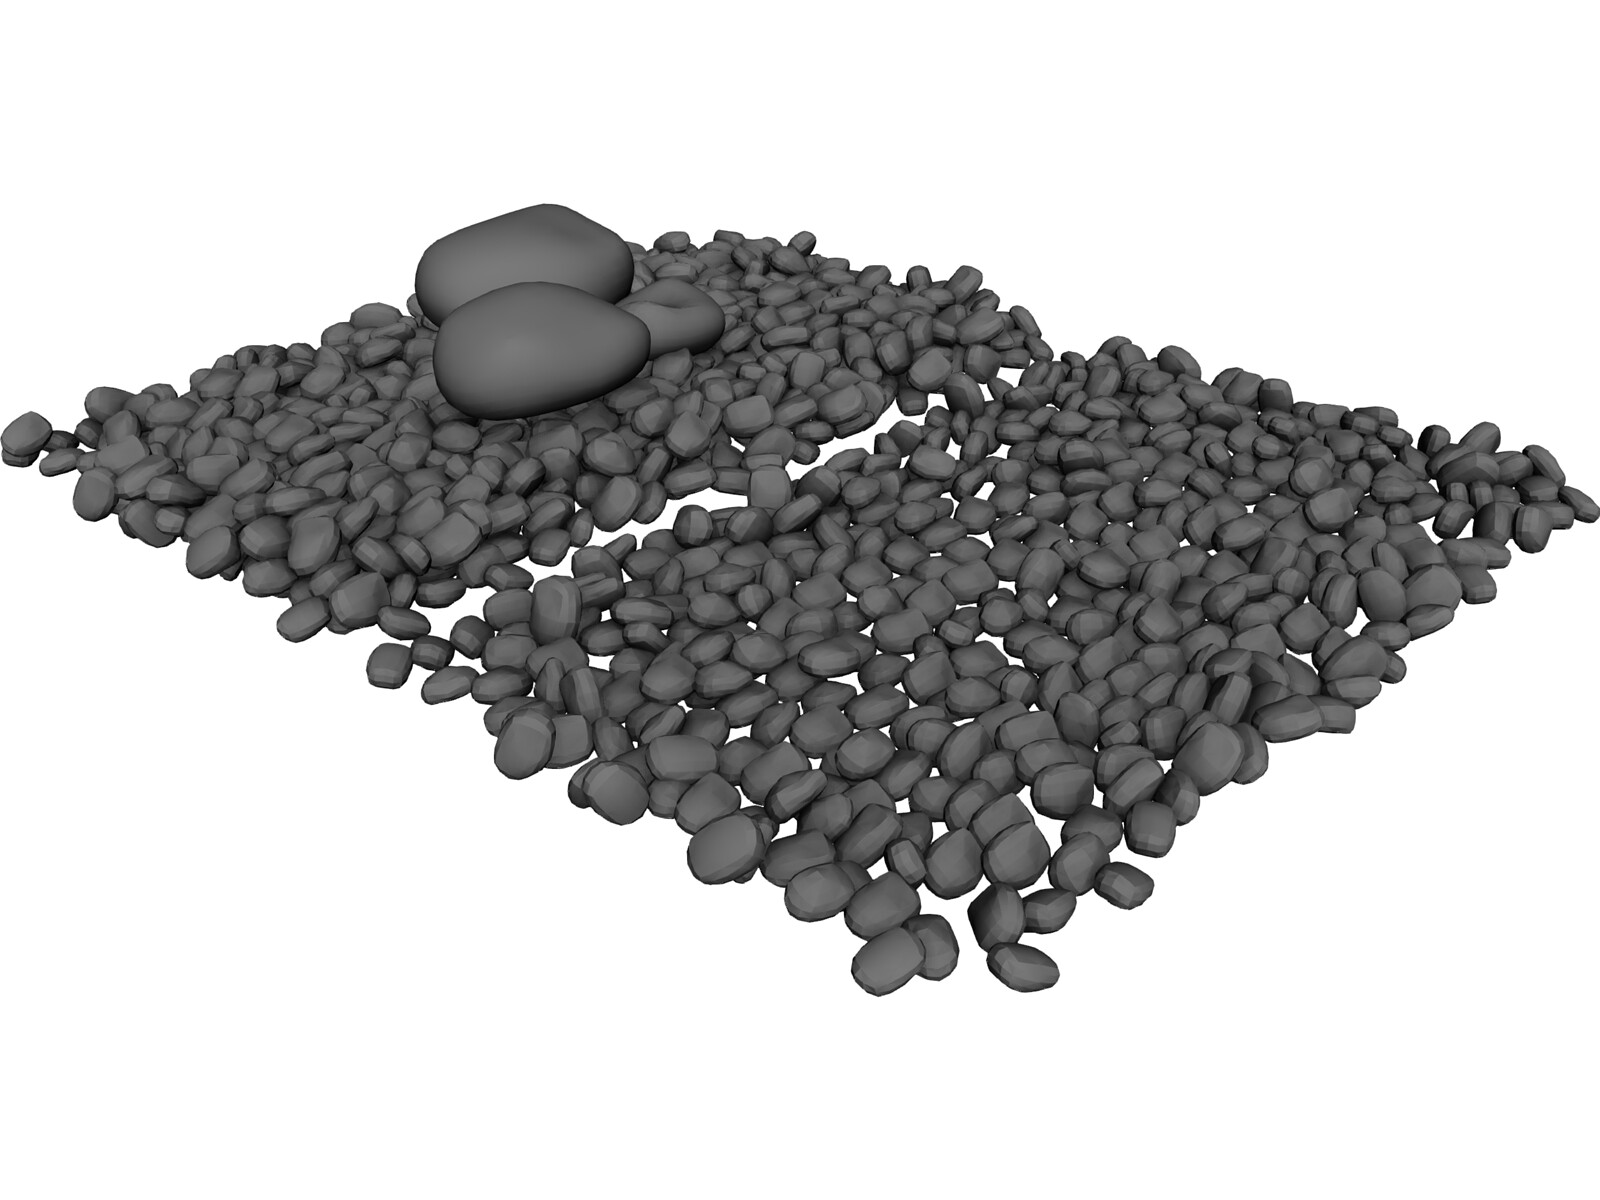 Rocks 3d Model 3d Cad Browser